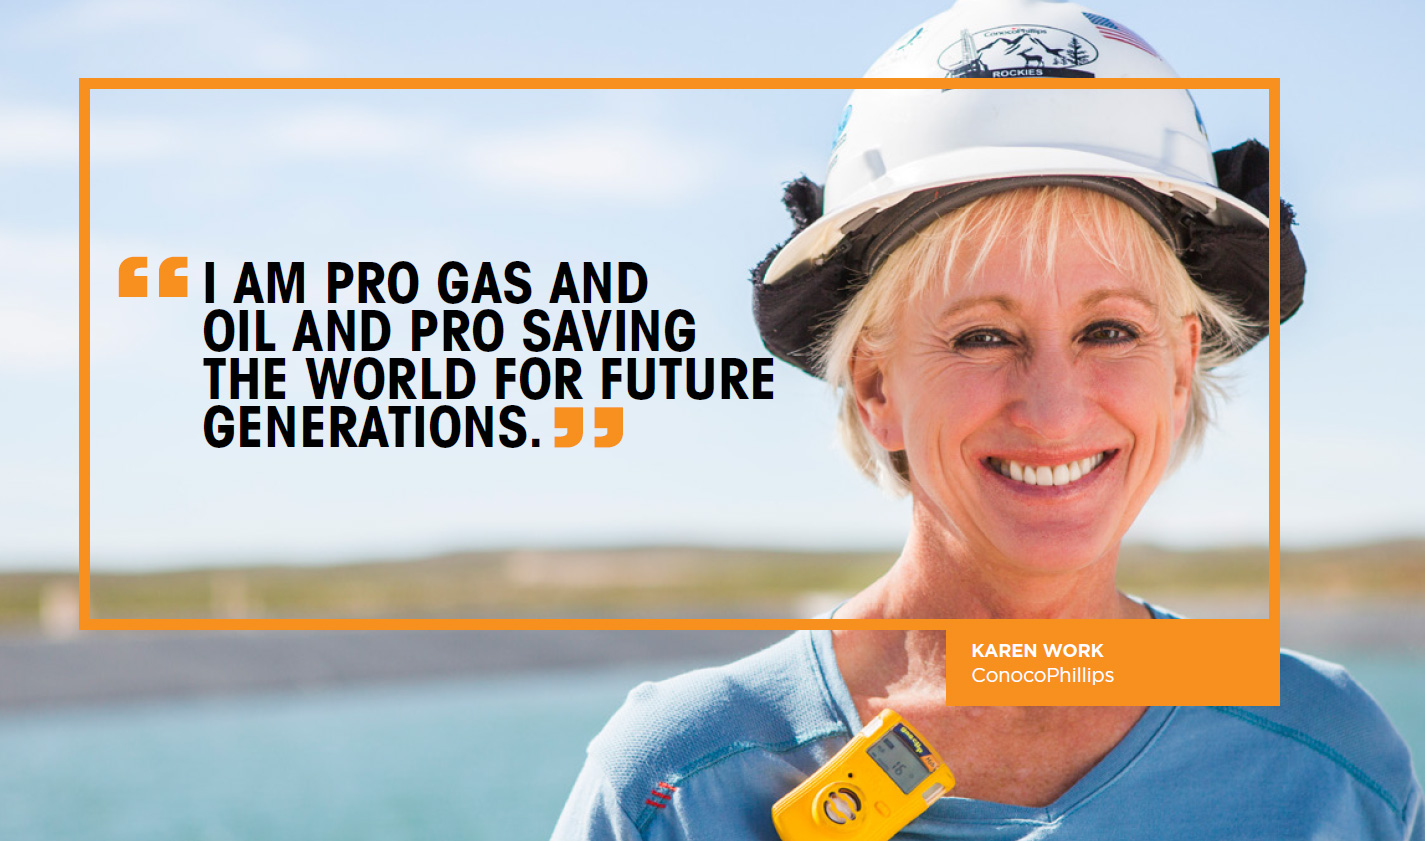 I am pro gas and oil and pro saving the world for future generations